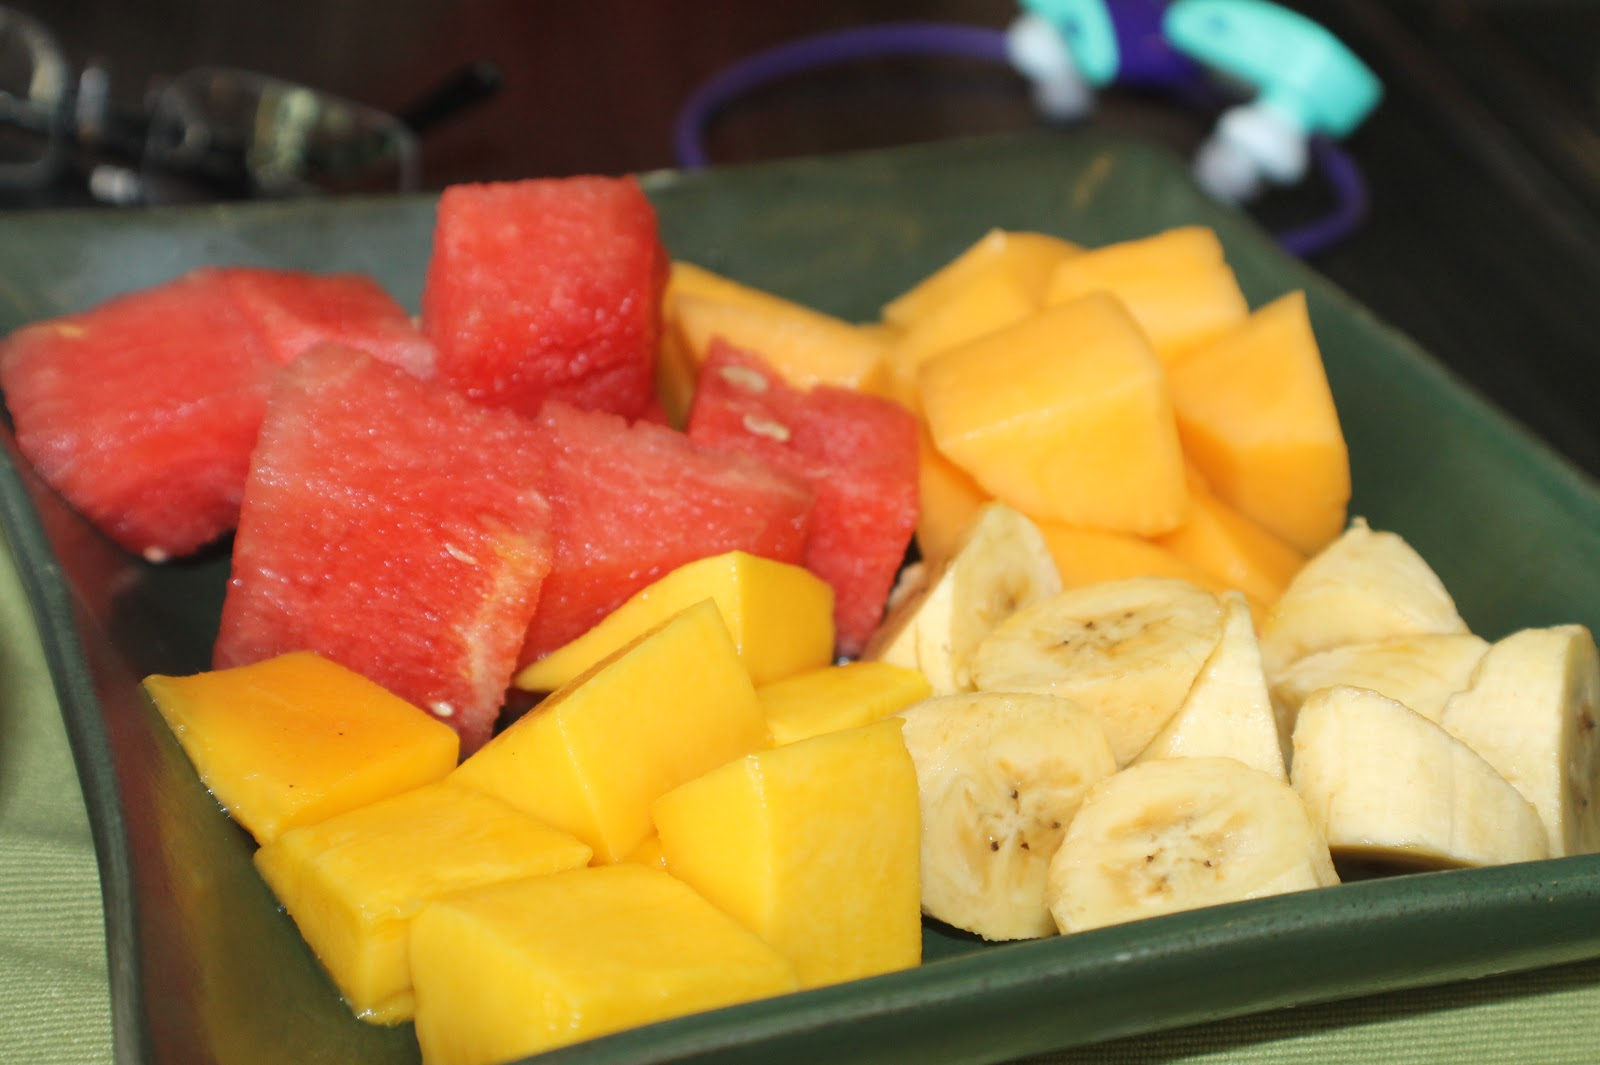 ... fruit platter. Nothings beats fresh fruit slices before and after any